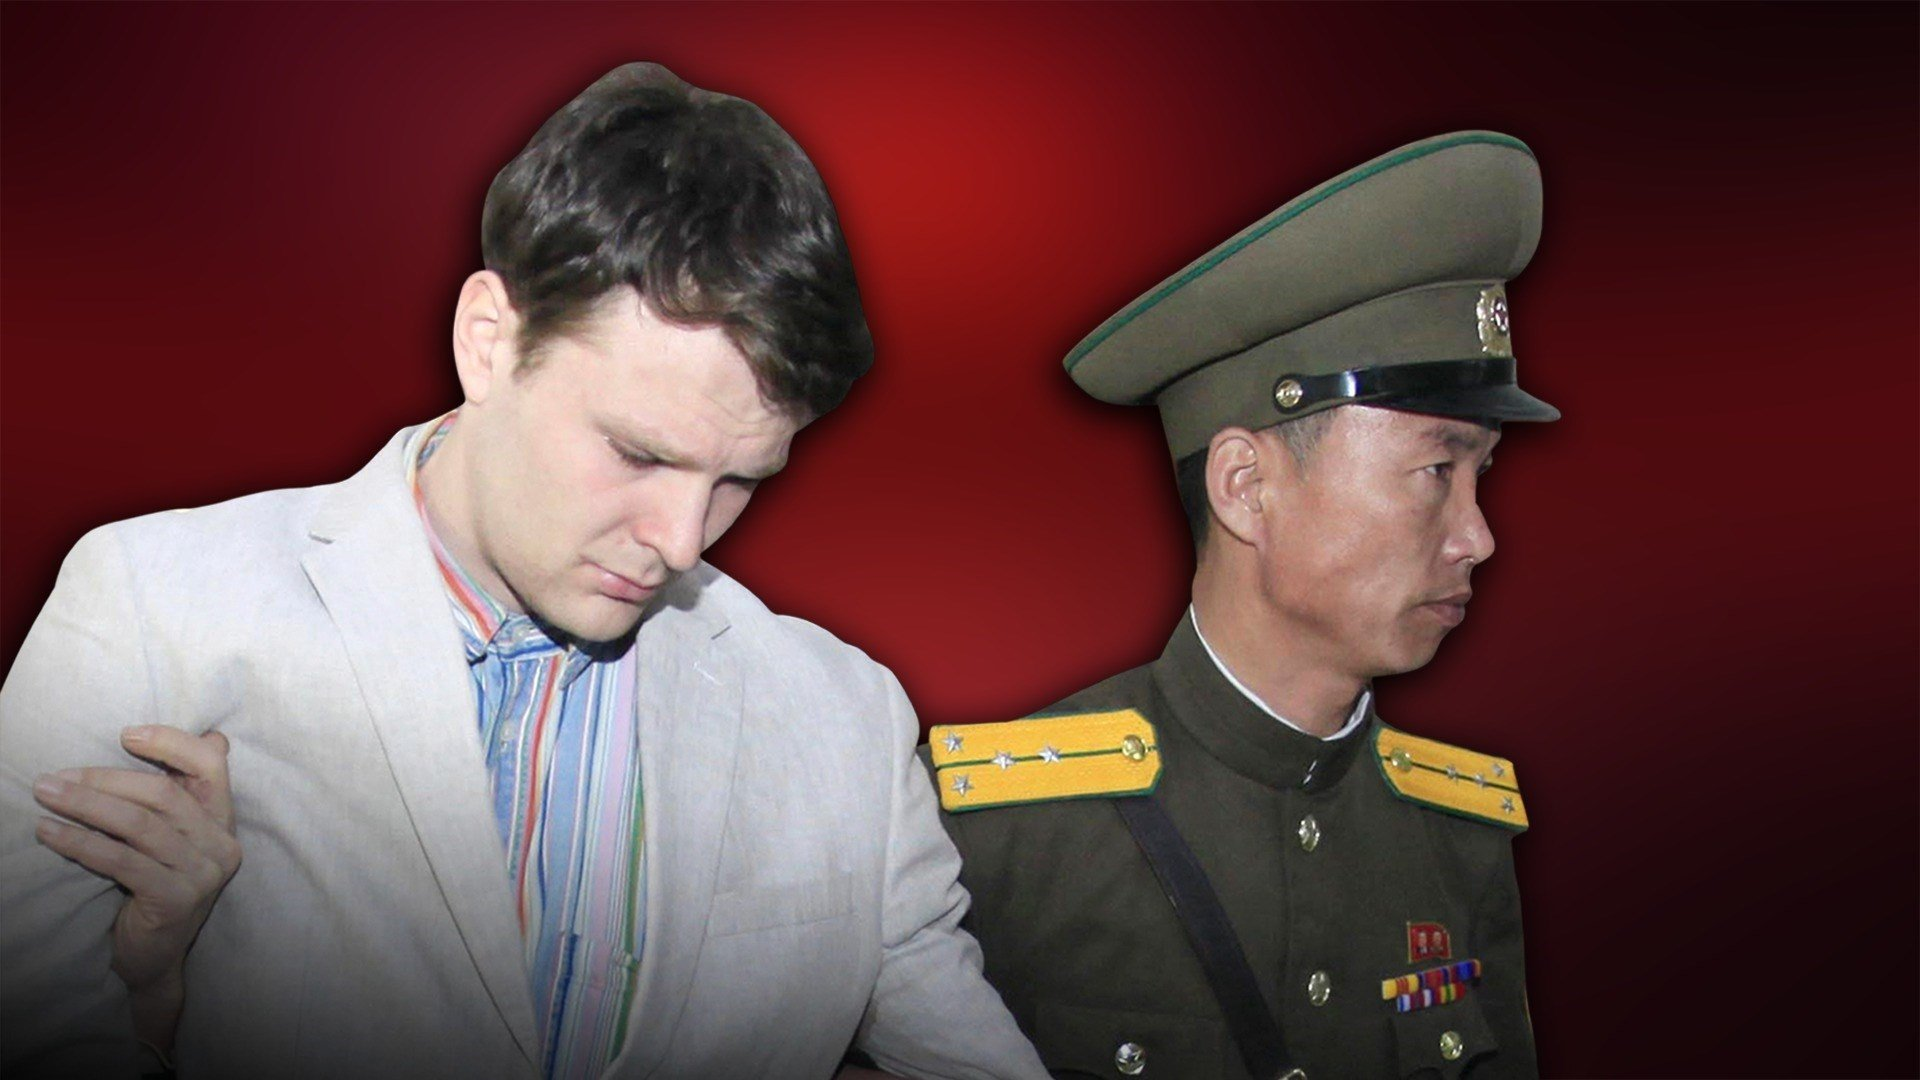 University of Virginia student Otto Warmbier under detention in North Korea.